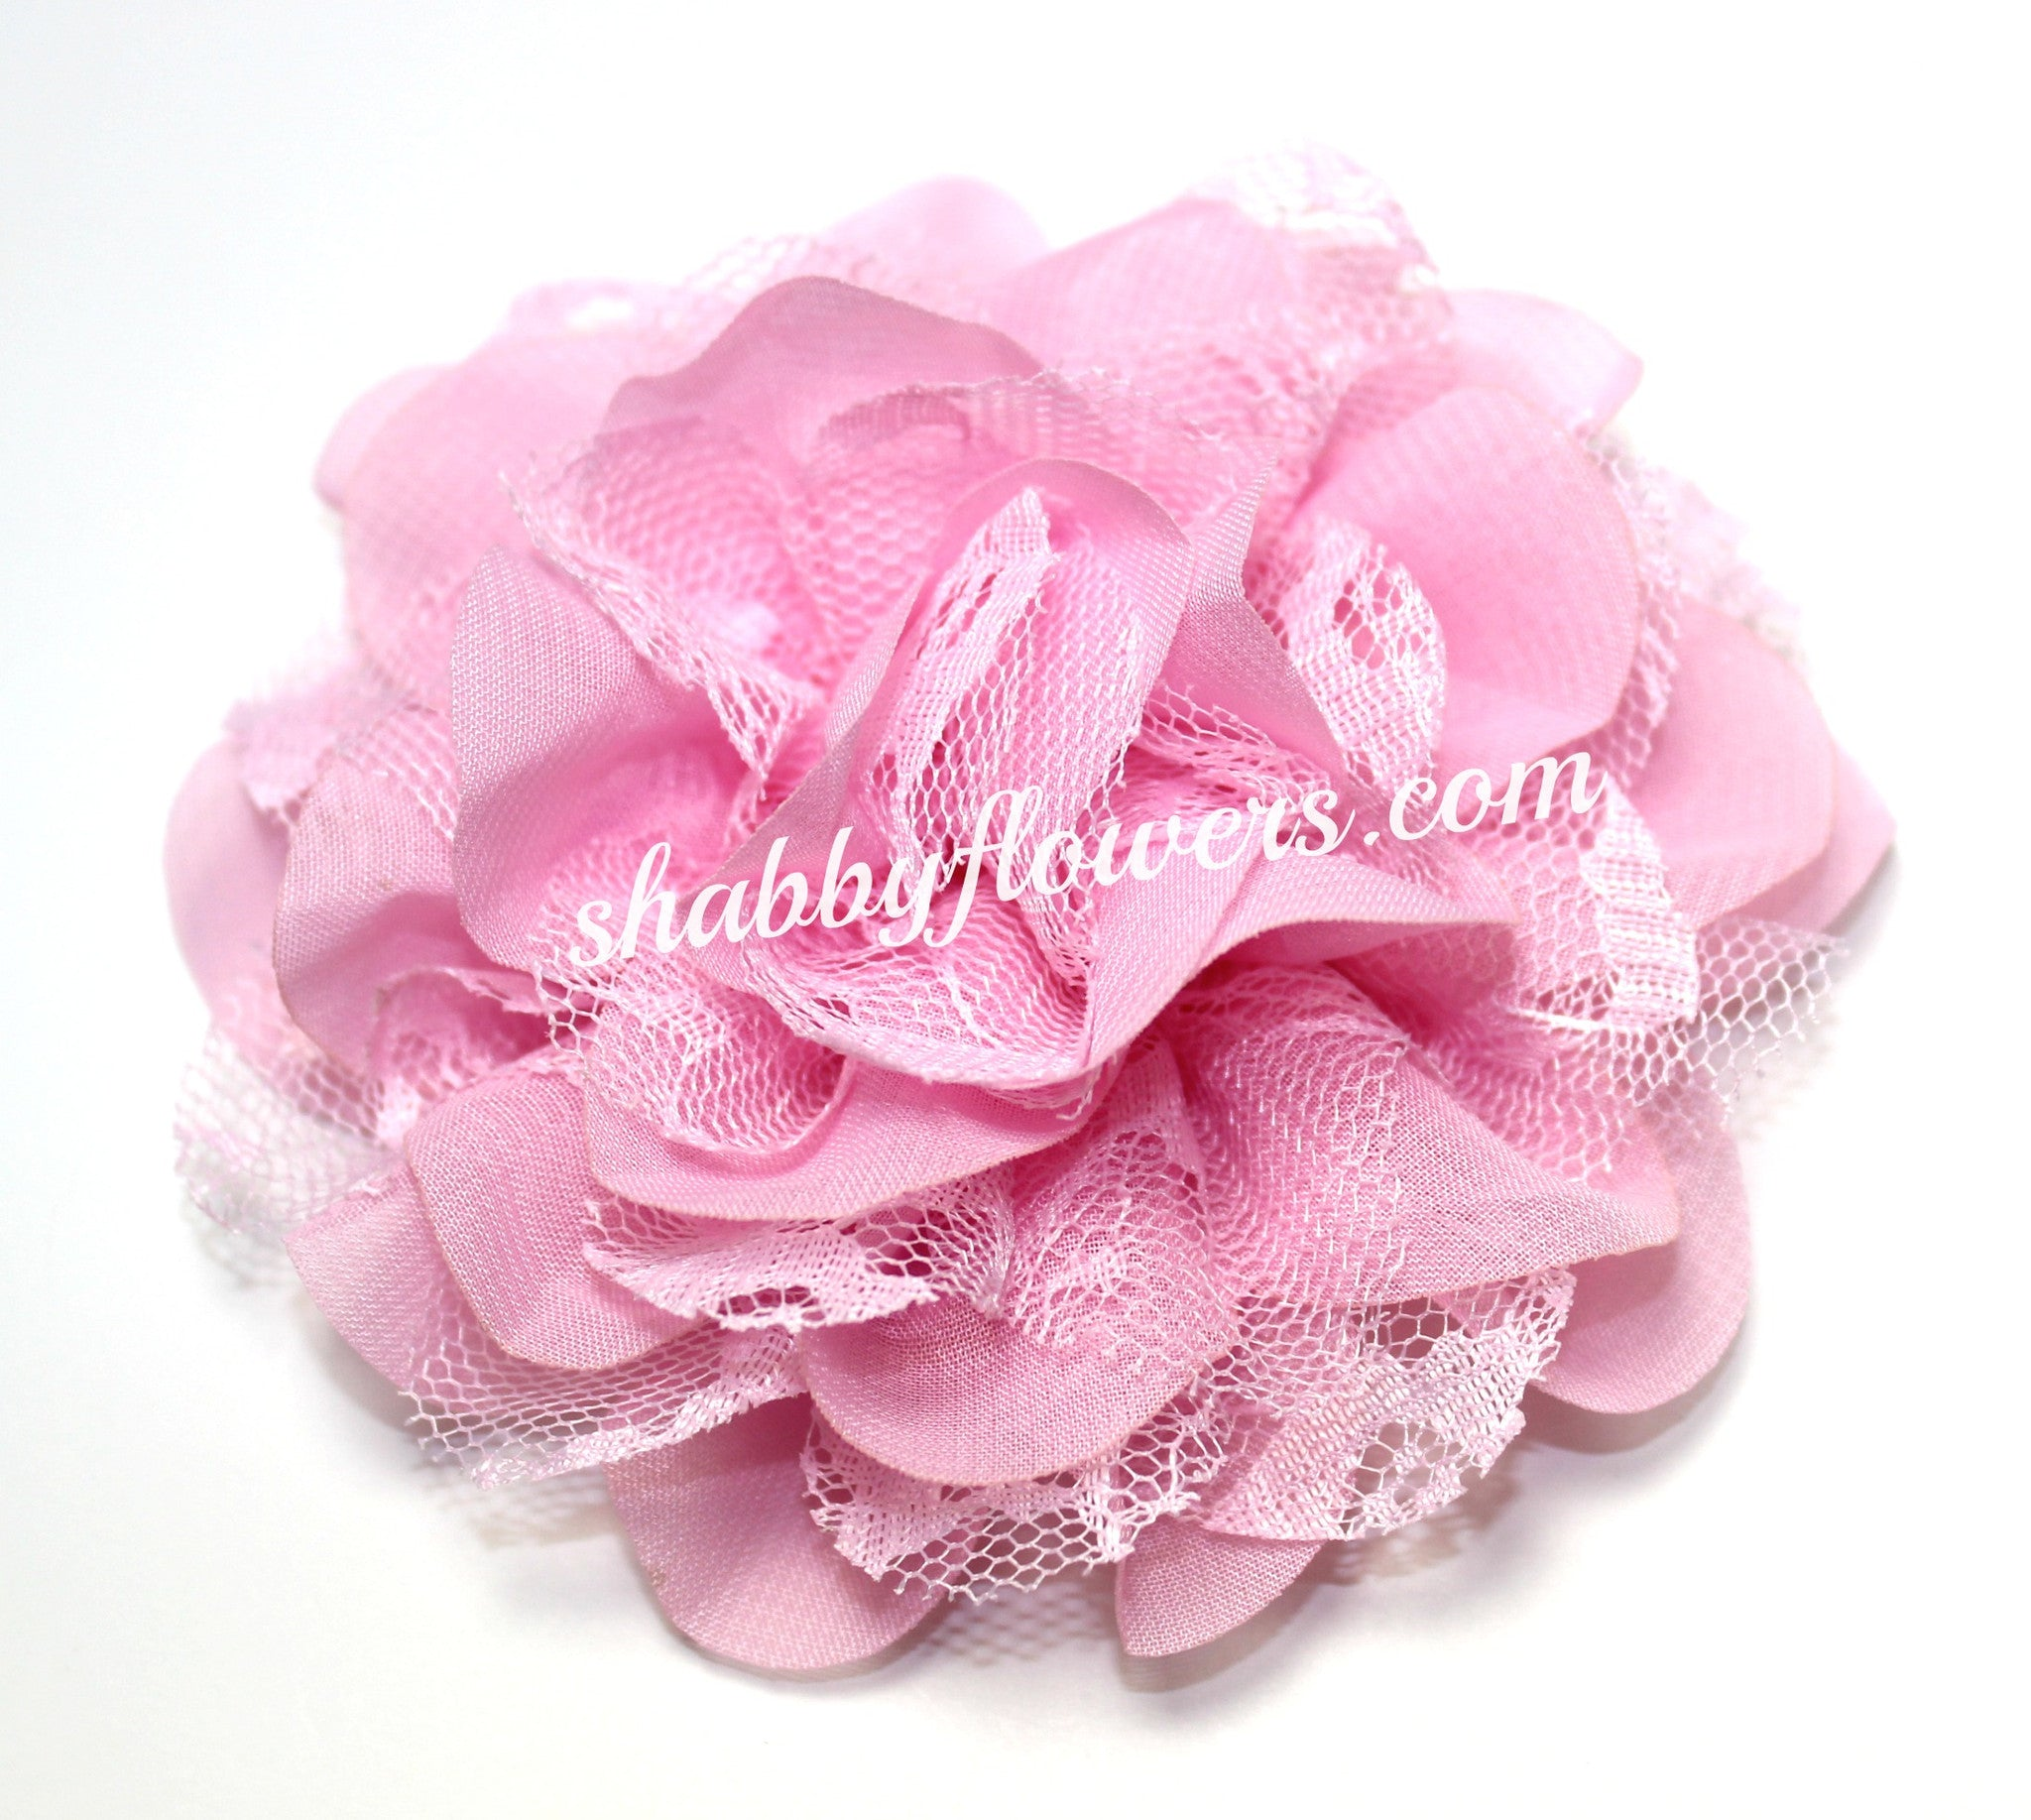 Chiffon and Lace Flower - Light Pink - shabbyflowers.com